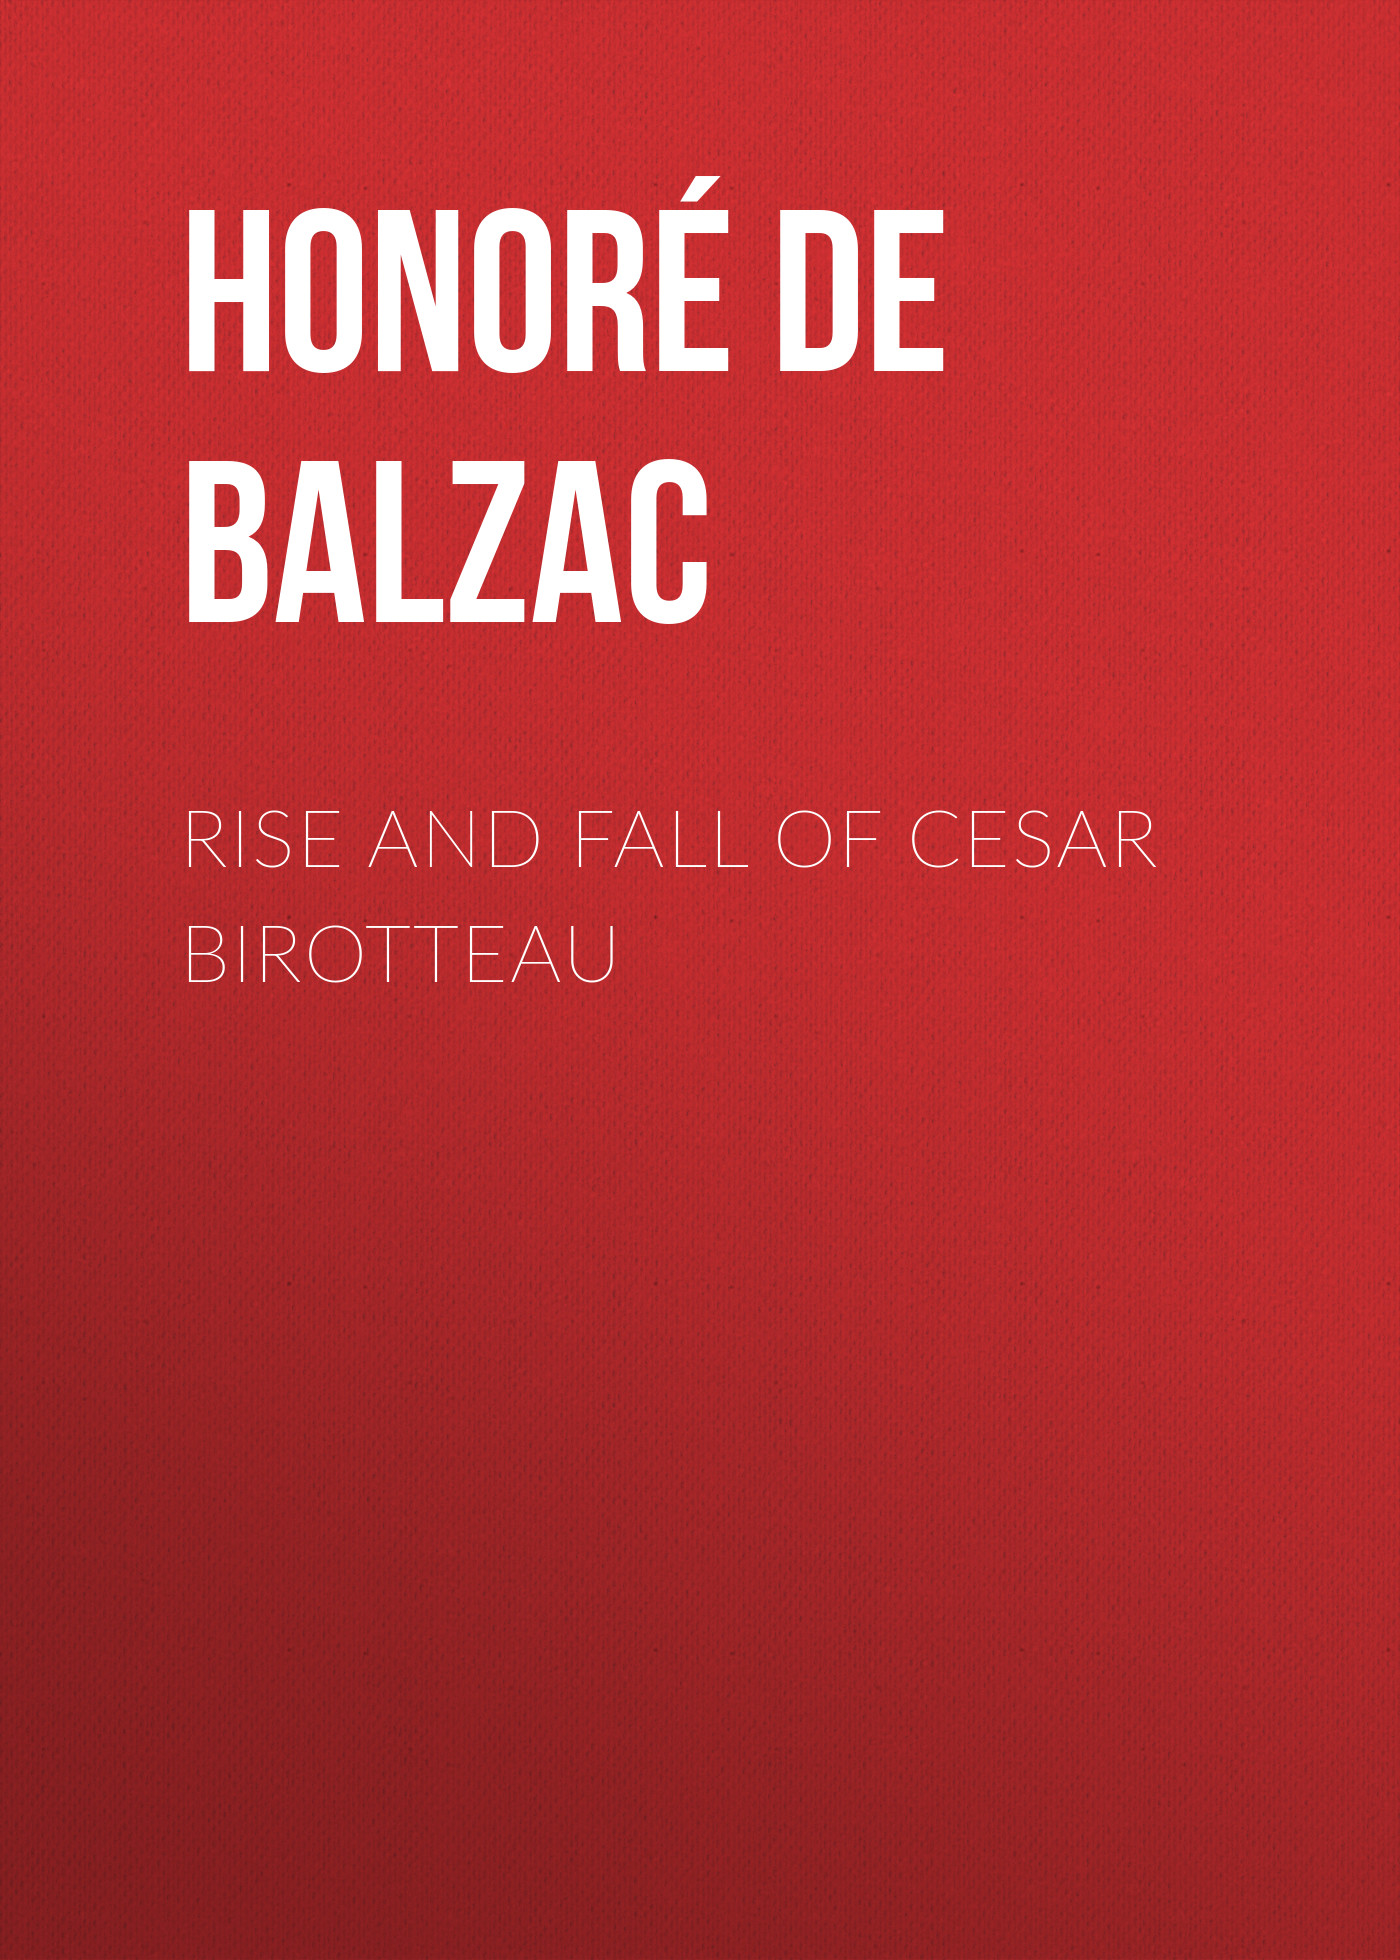 Оноре де Бальзак Rise and Fall of Cesar Birotteau susan lenox her fall and rise volume 1